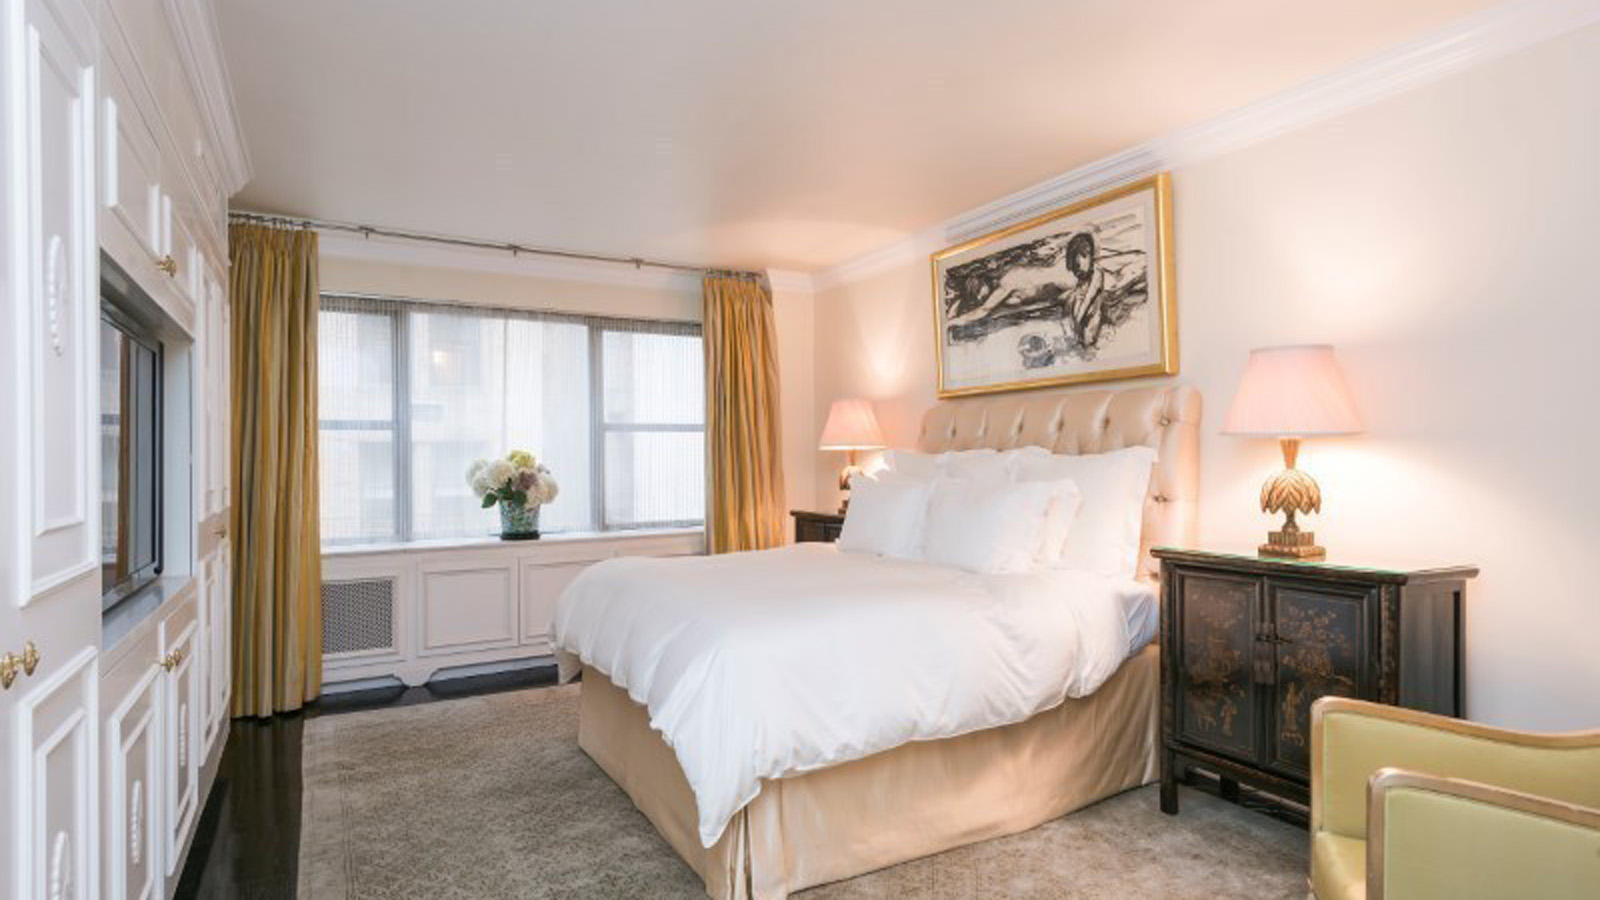 The Dorchester, 110 East 57th Street